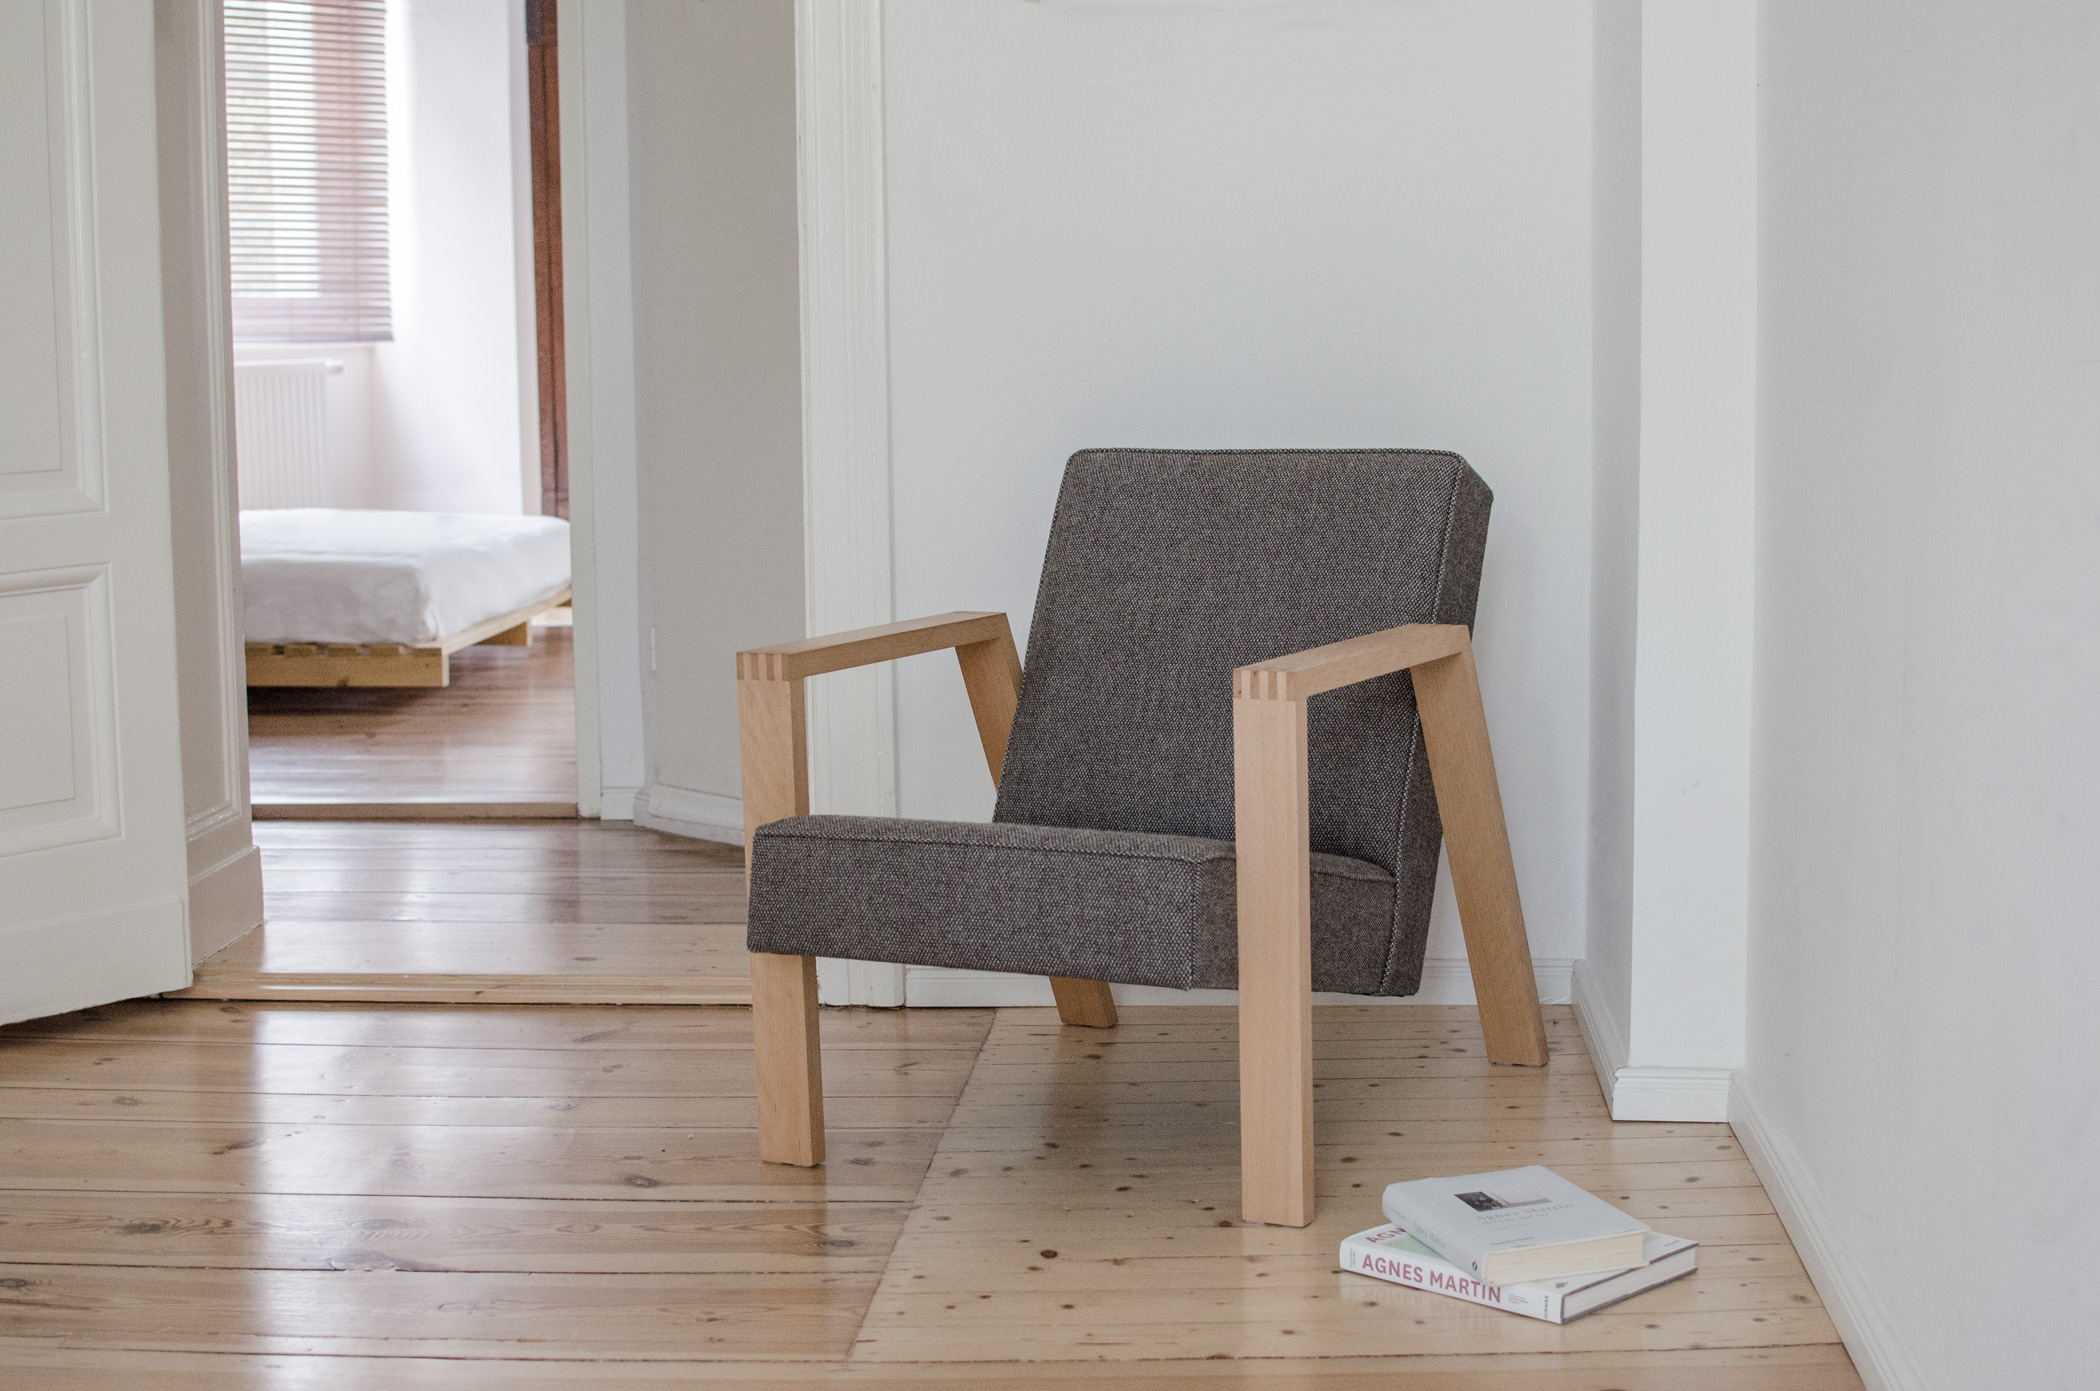 Pontier N°1 armchair with Kvadrat Molly 2 – 194 upholstery